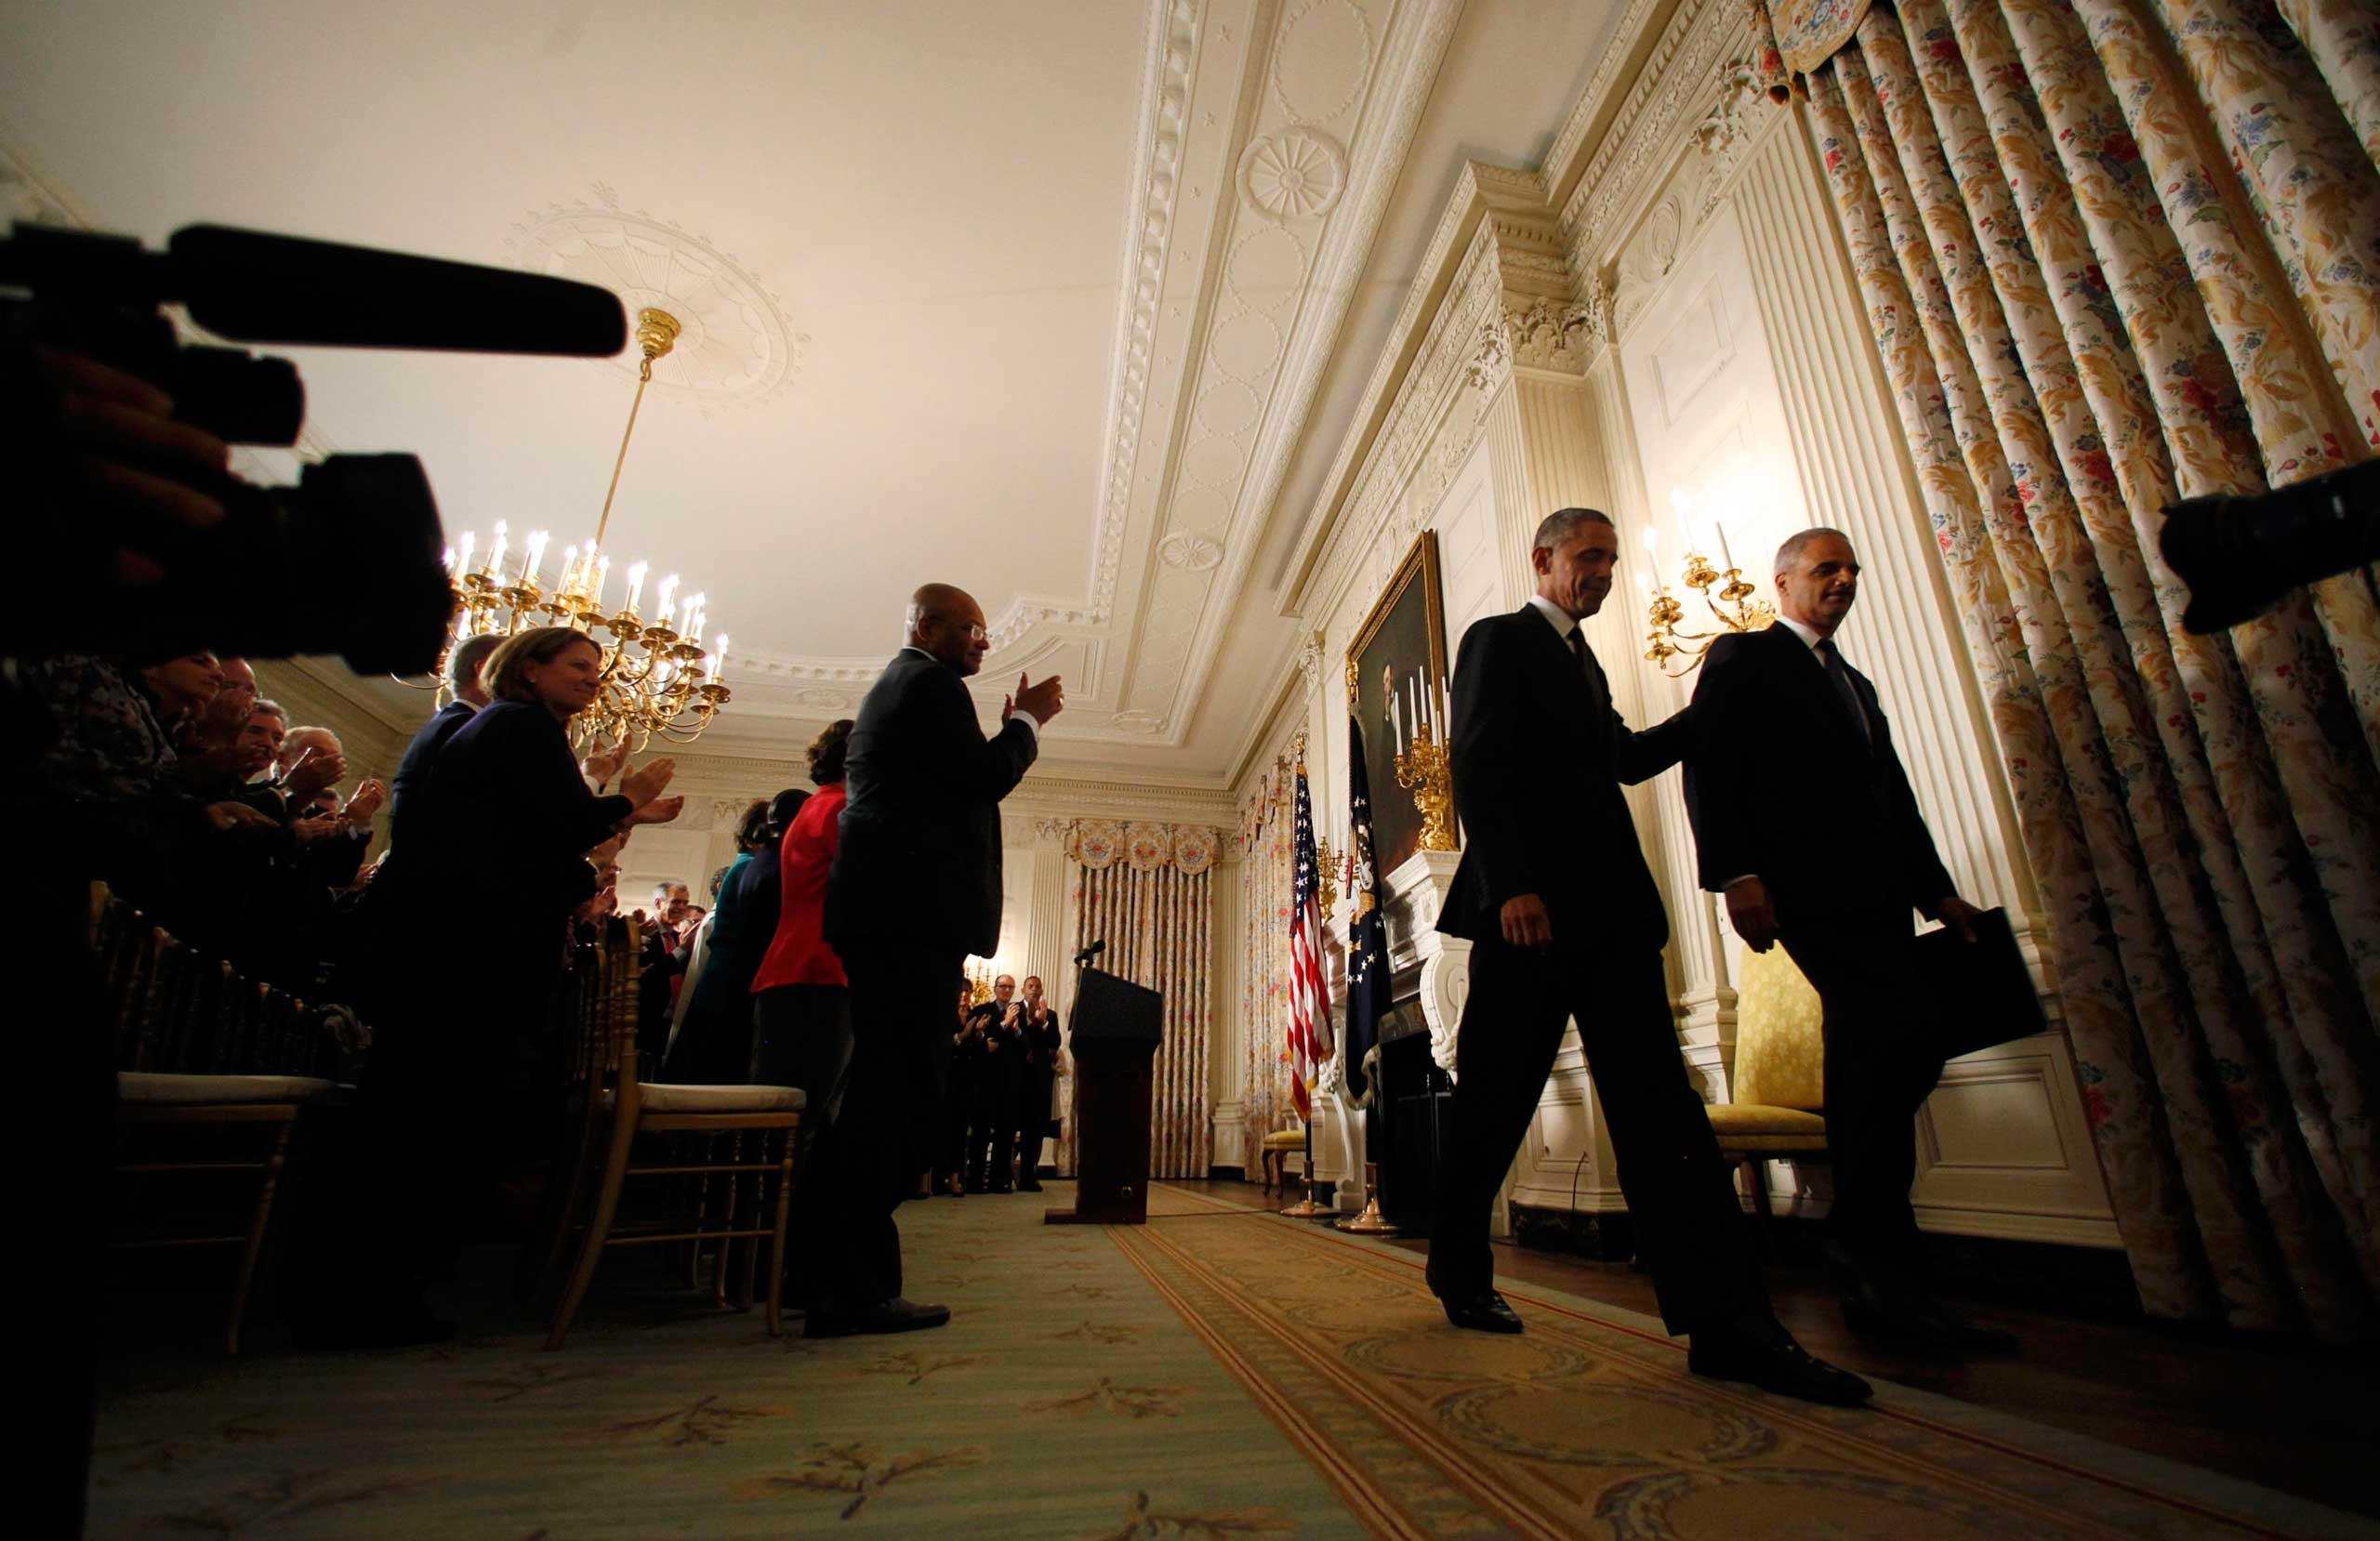 Sept. 25, 2014. President Barack Obama and U.S. Attorney General Eric Holder depart together after announcing Holder's resignation as Attorney General in the White House State Dining Room at the White House in Washington, D.C.